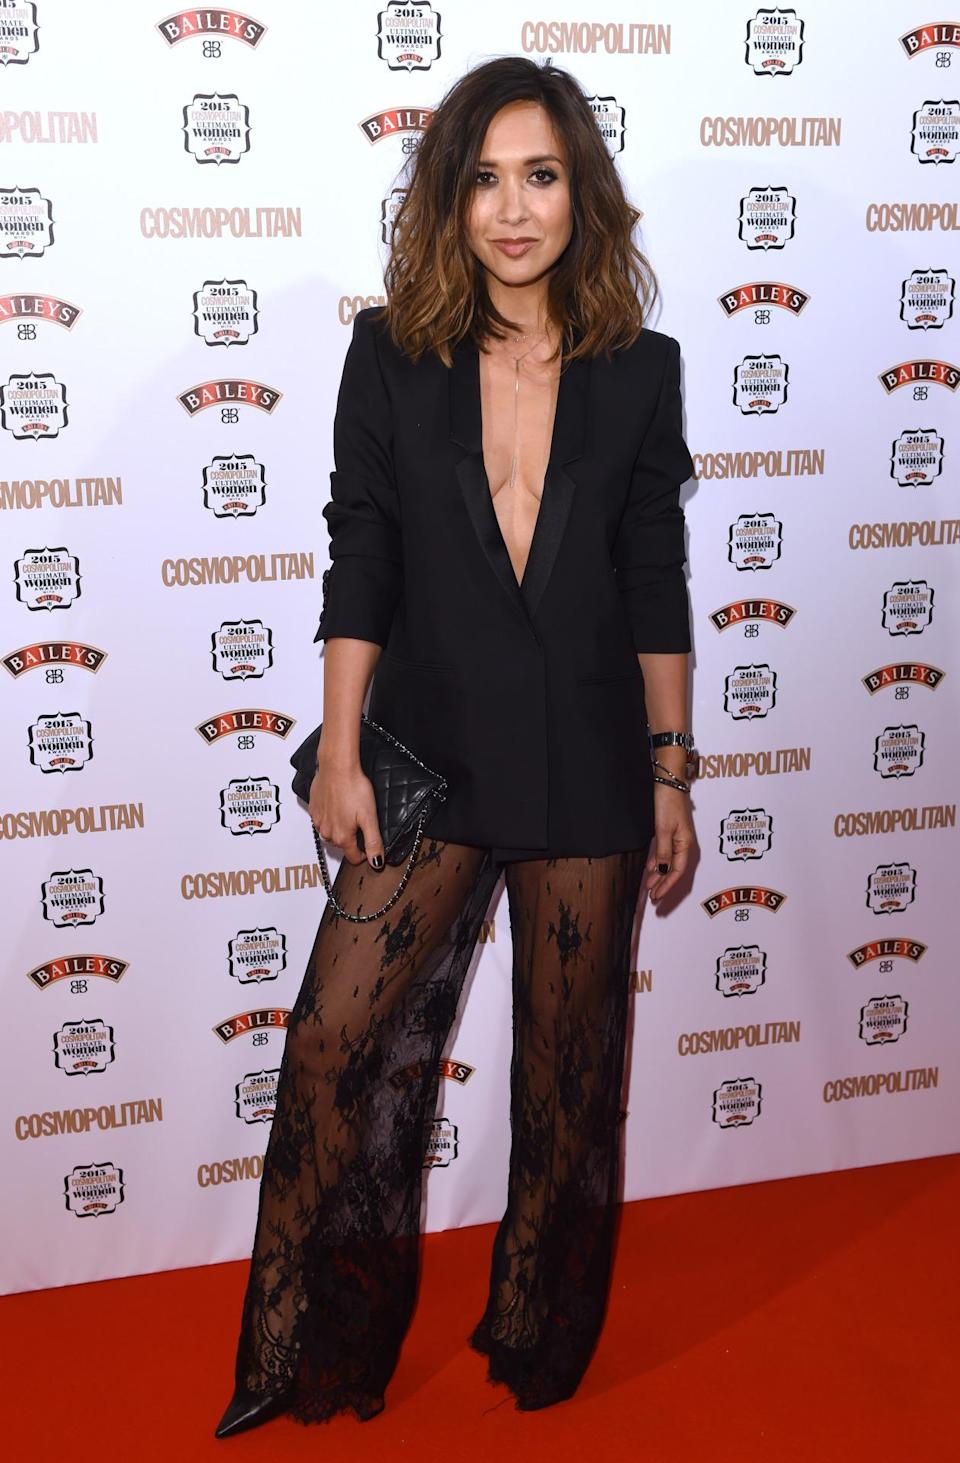 Myleene Klass's questionable get-up included lace trousers and an oversized blazer, worn with nothing underneath. [Photo: Rex]